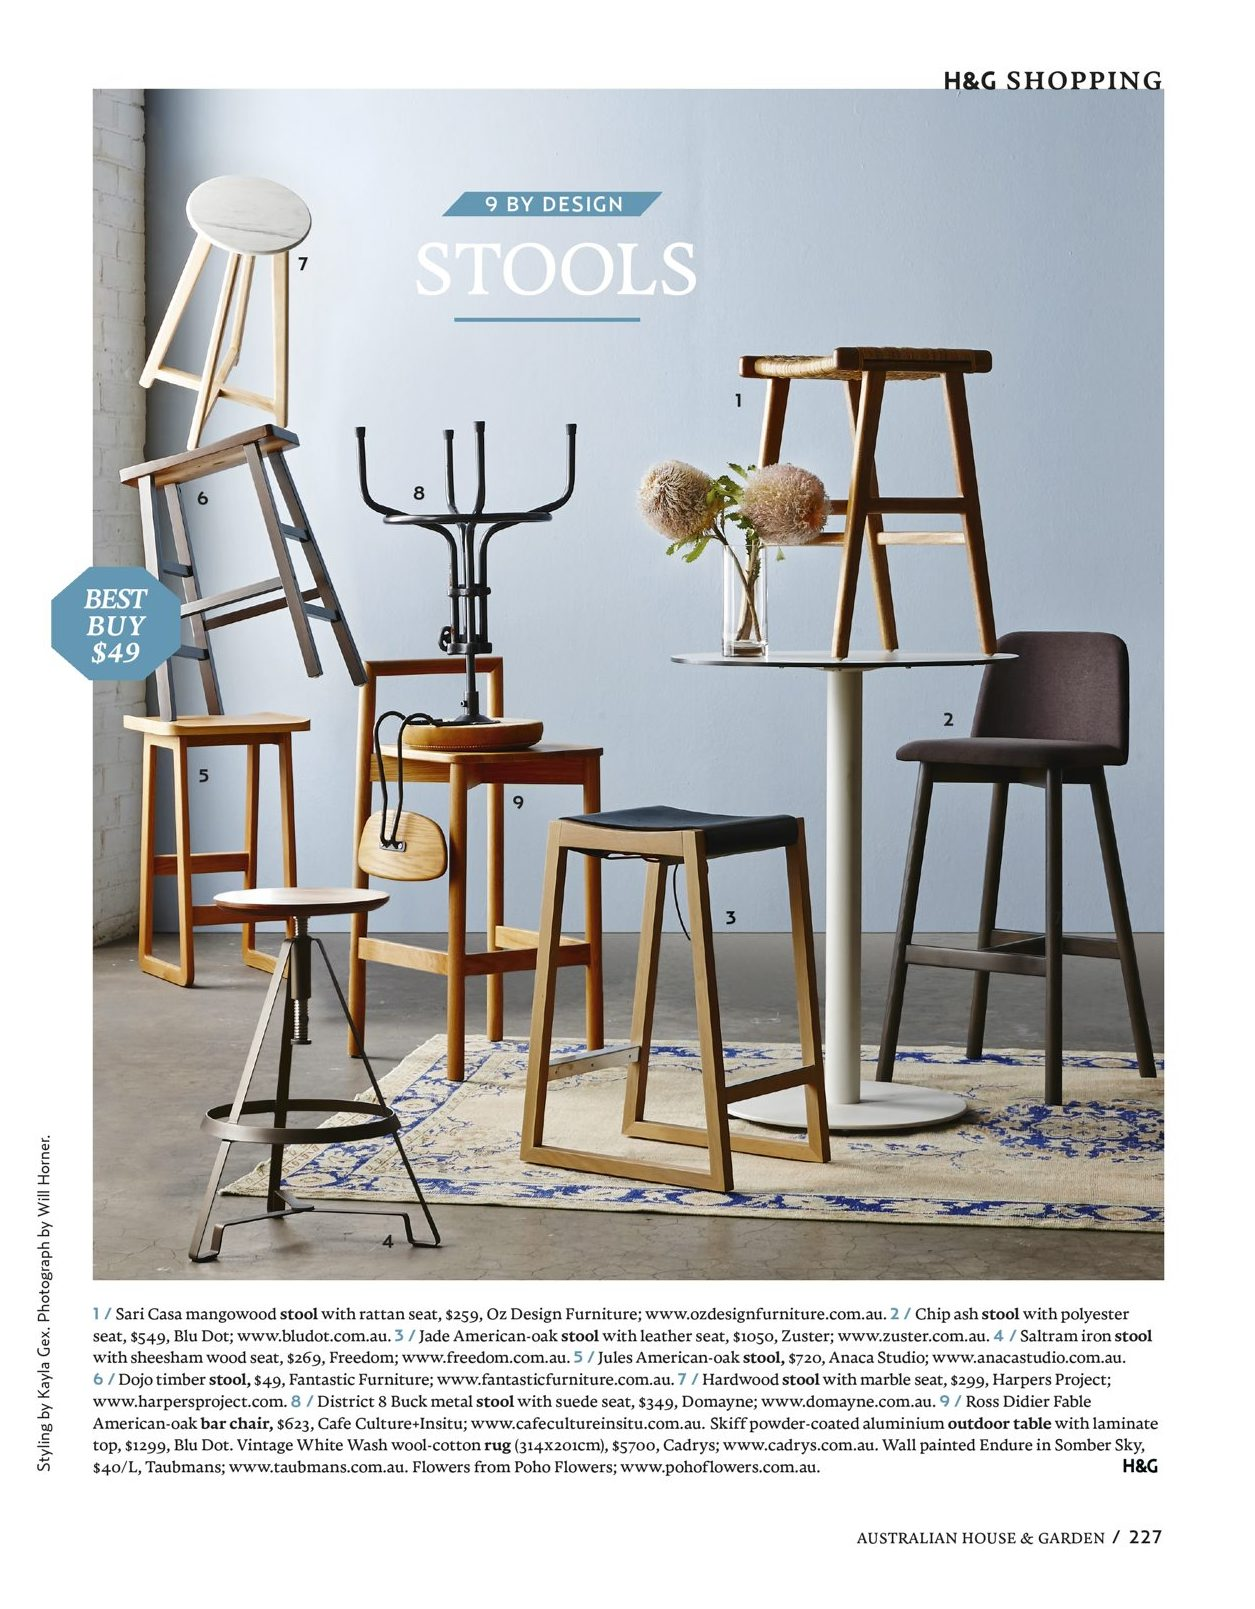 Sept 2015 - House & Gardens - featuring Jules stool in timber (back left)